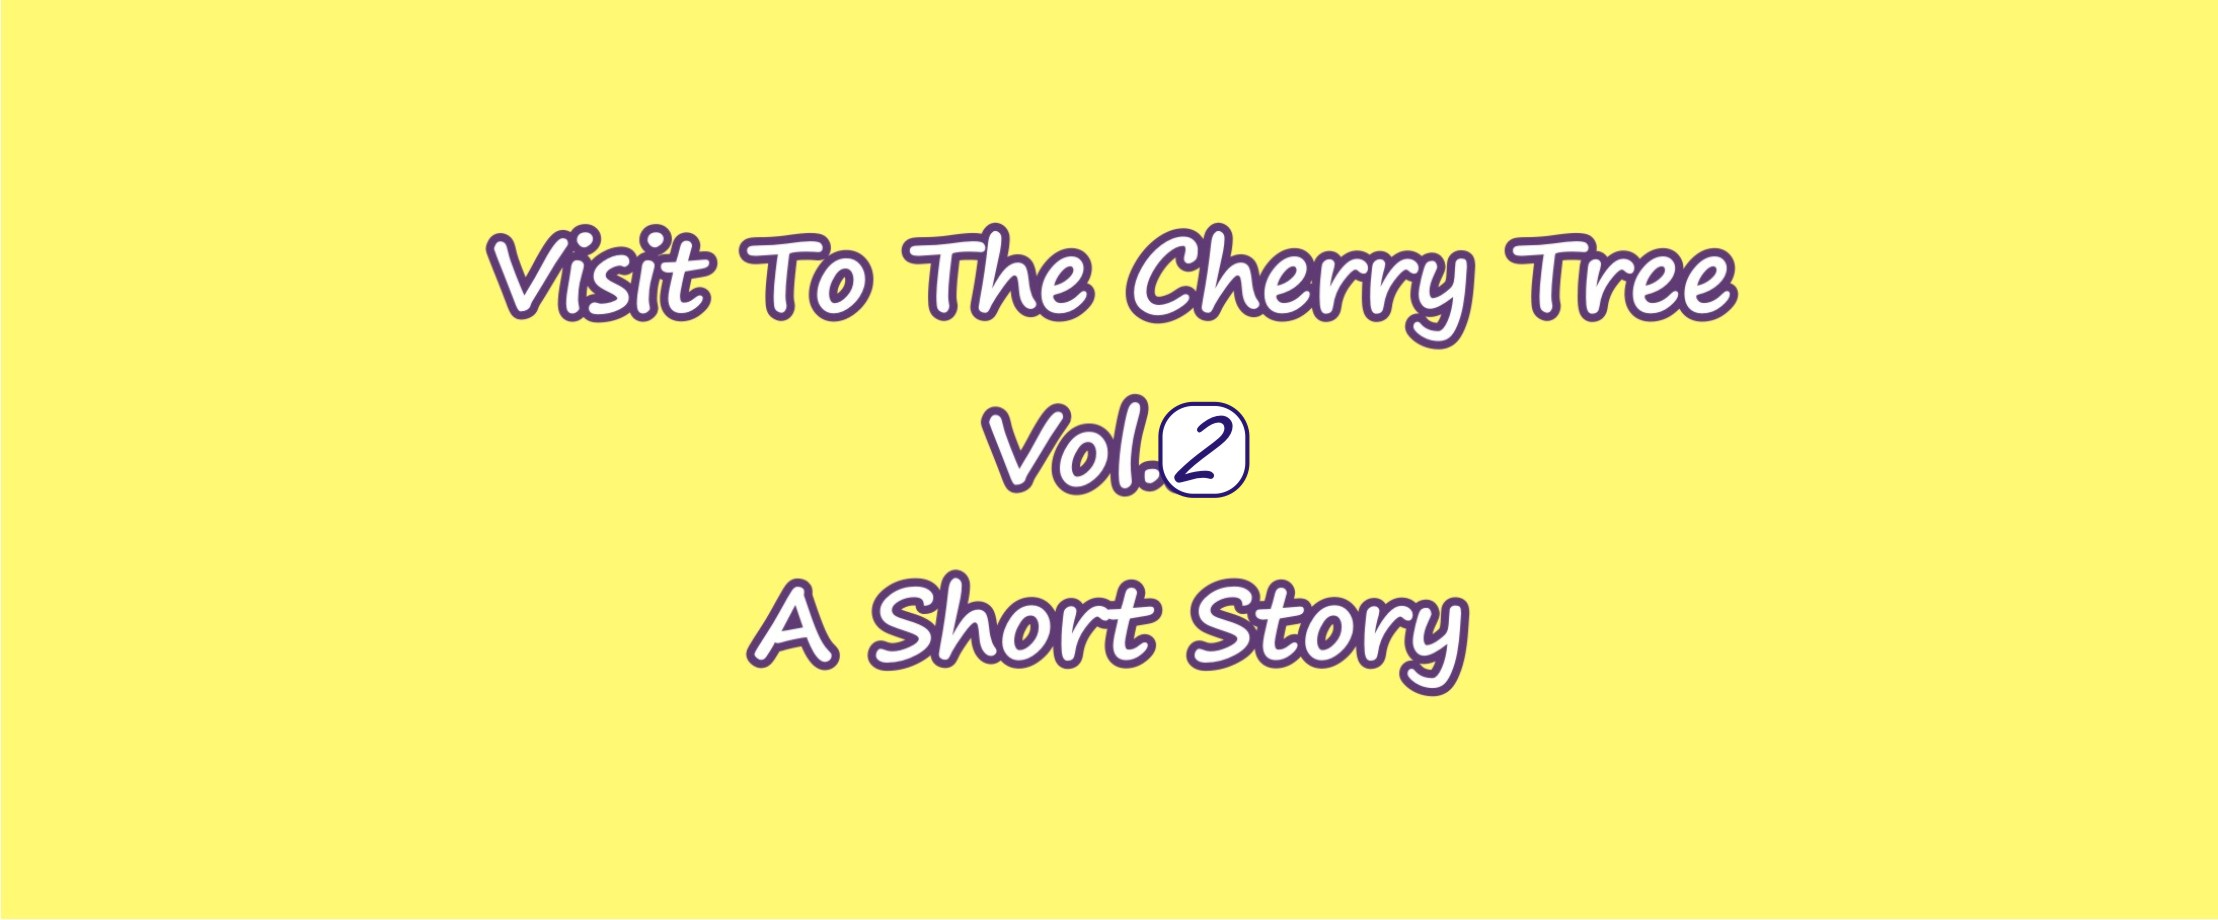 Visit to the Cherry tree, Volume 2.